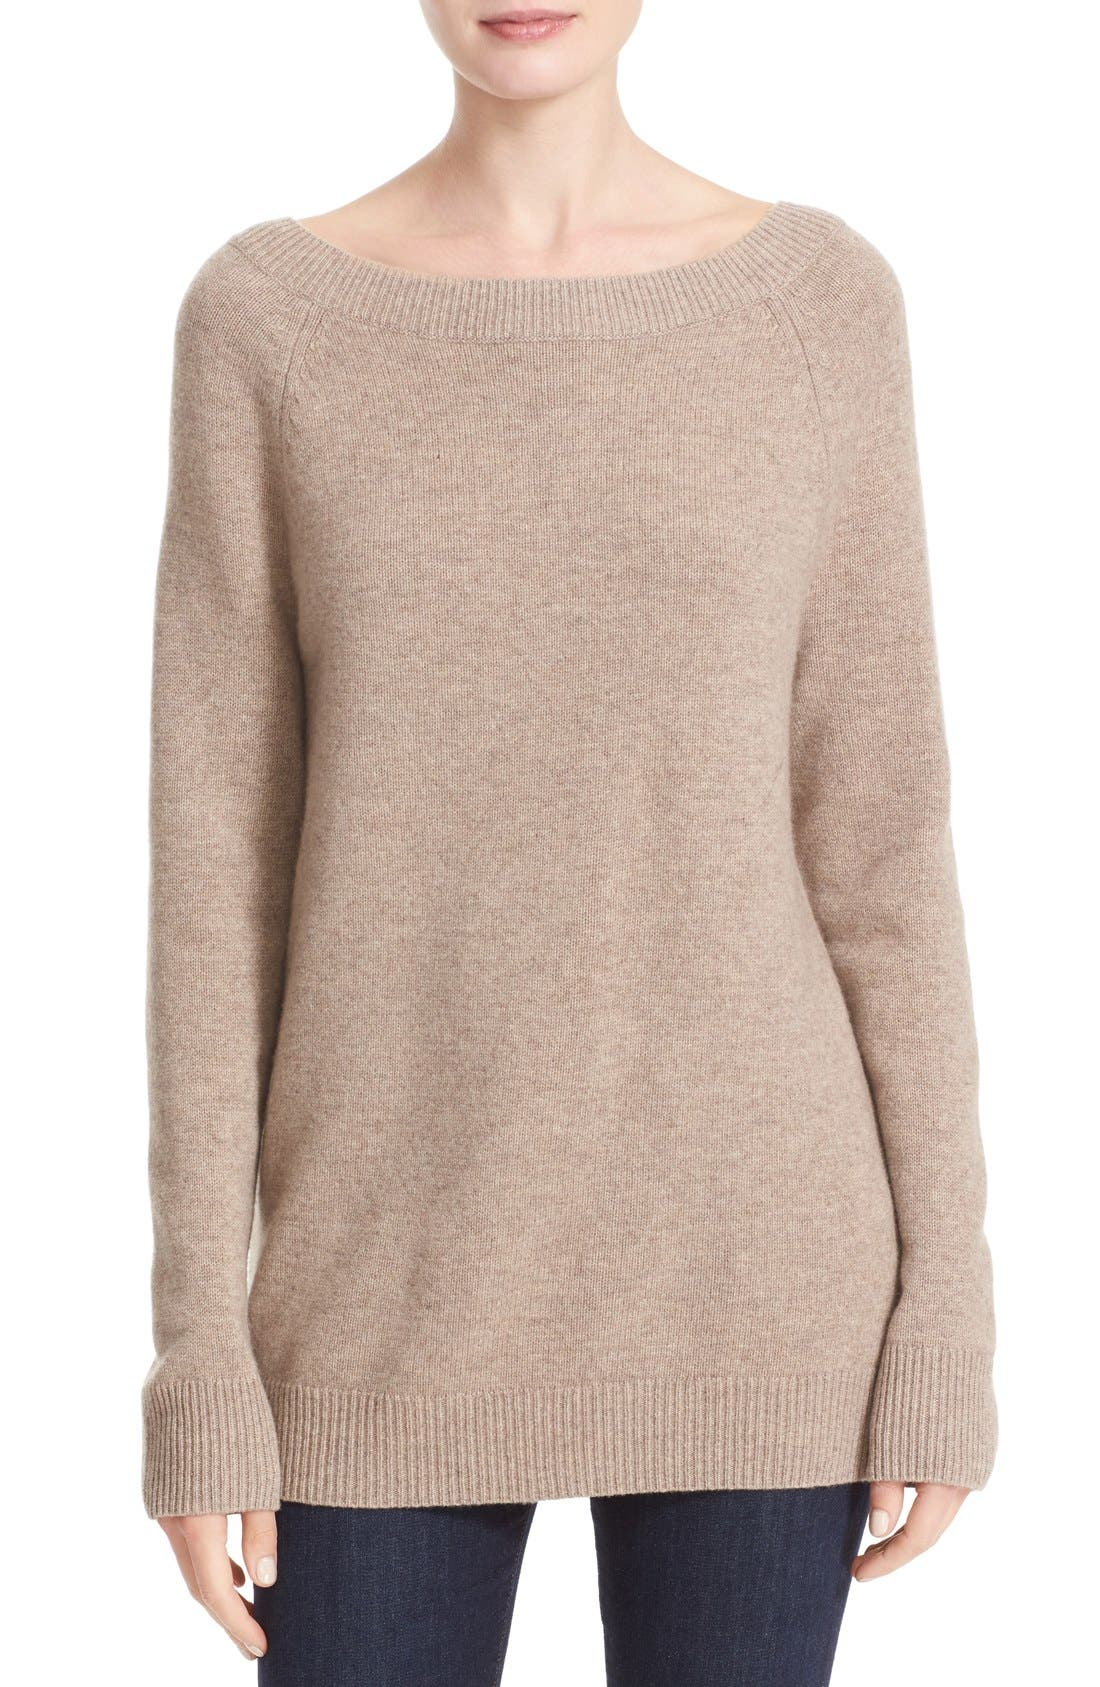 Main Image - Equipment Cody Wool & Cashmere Boatneck Sweater (Nordstrom Exclusive)